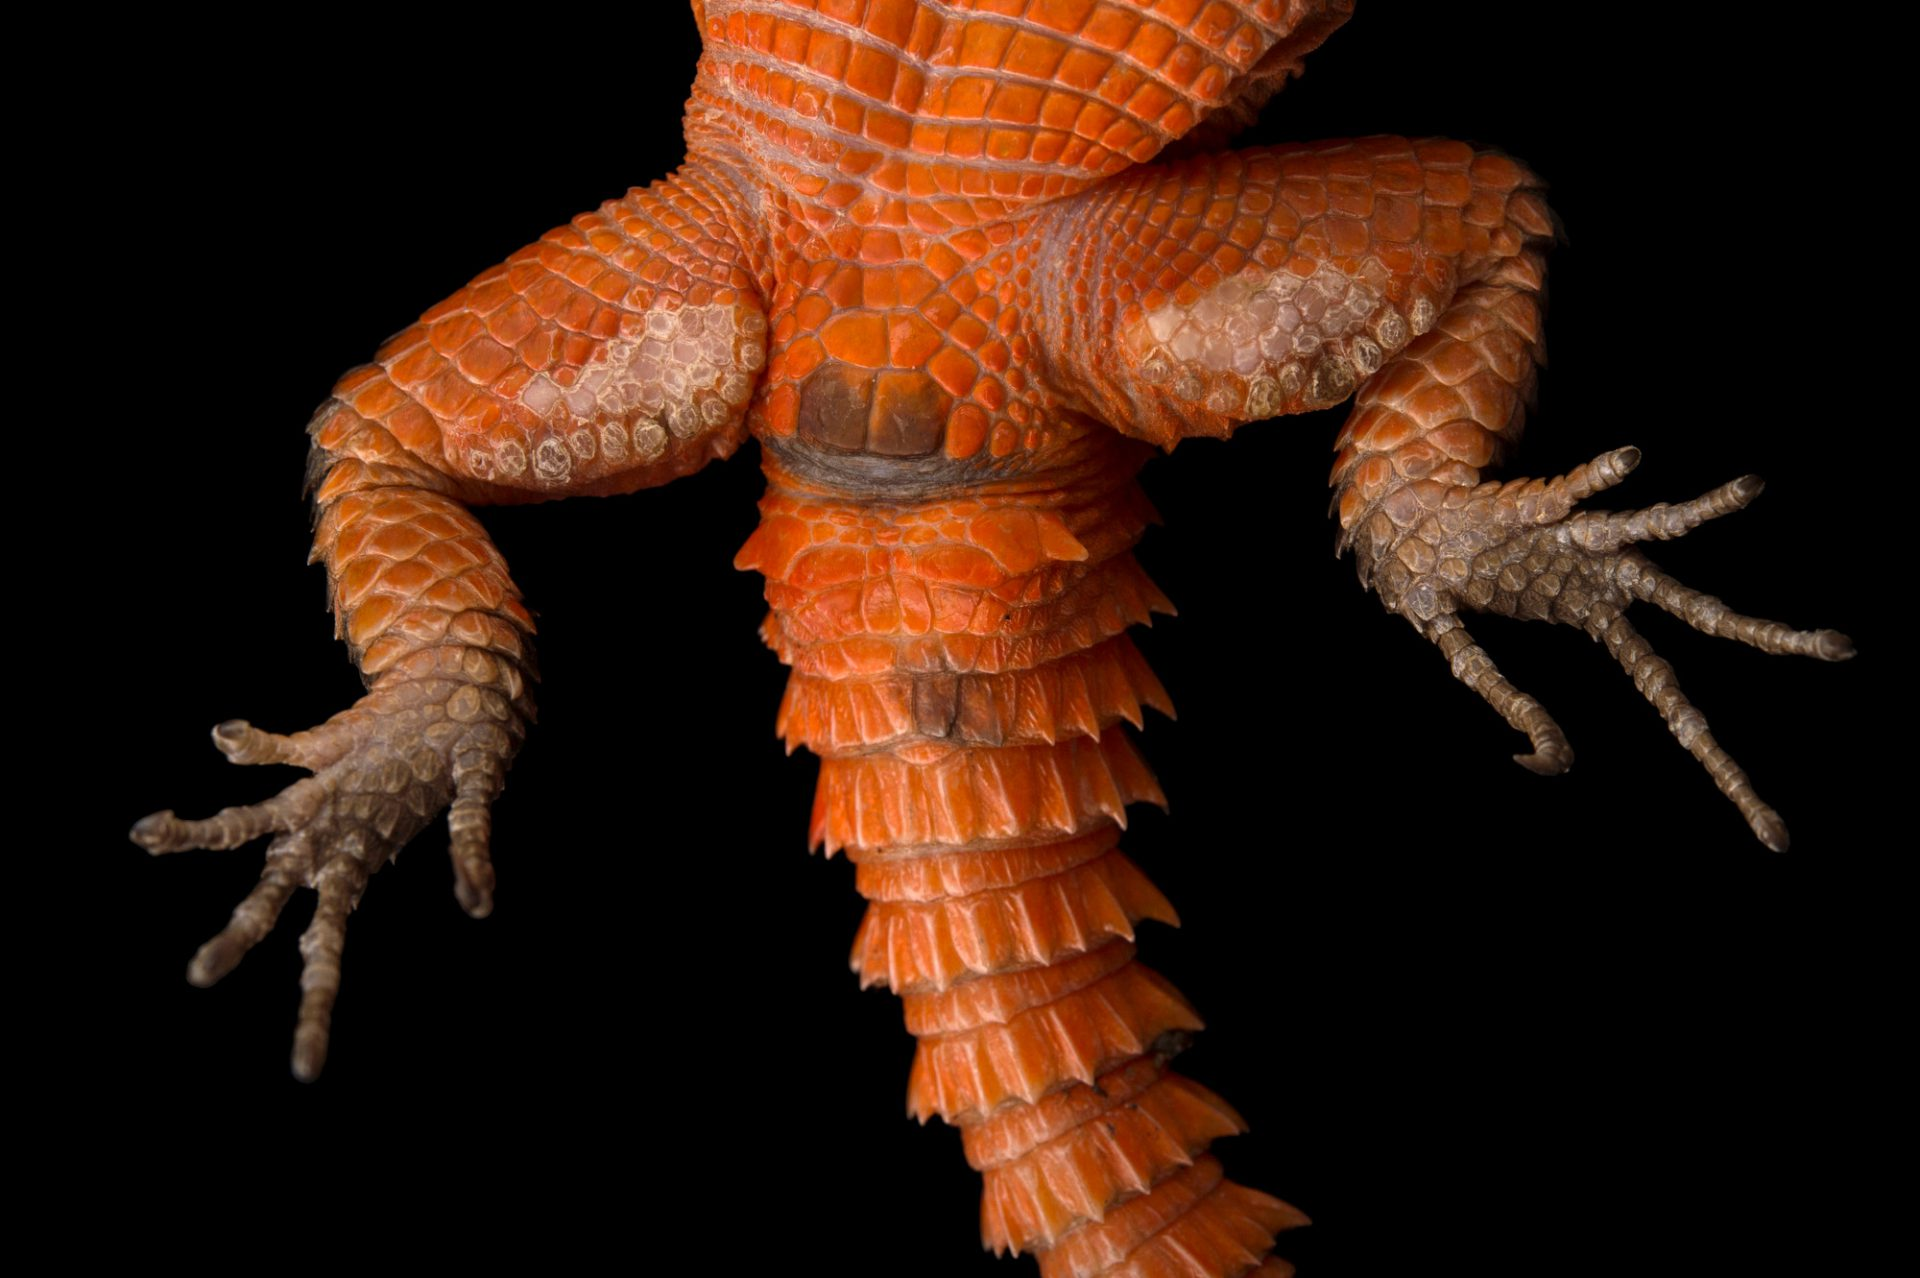 Photo: Underside of a Mozambique girdled lizard [Smaug mossambicus) at the Sedgwick County Zoo.